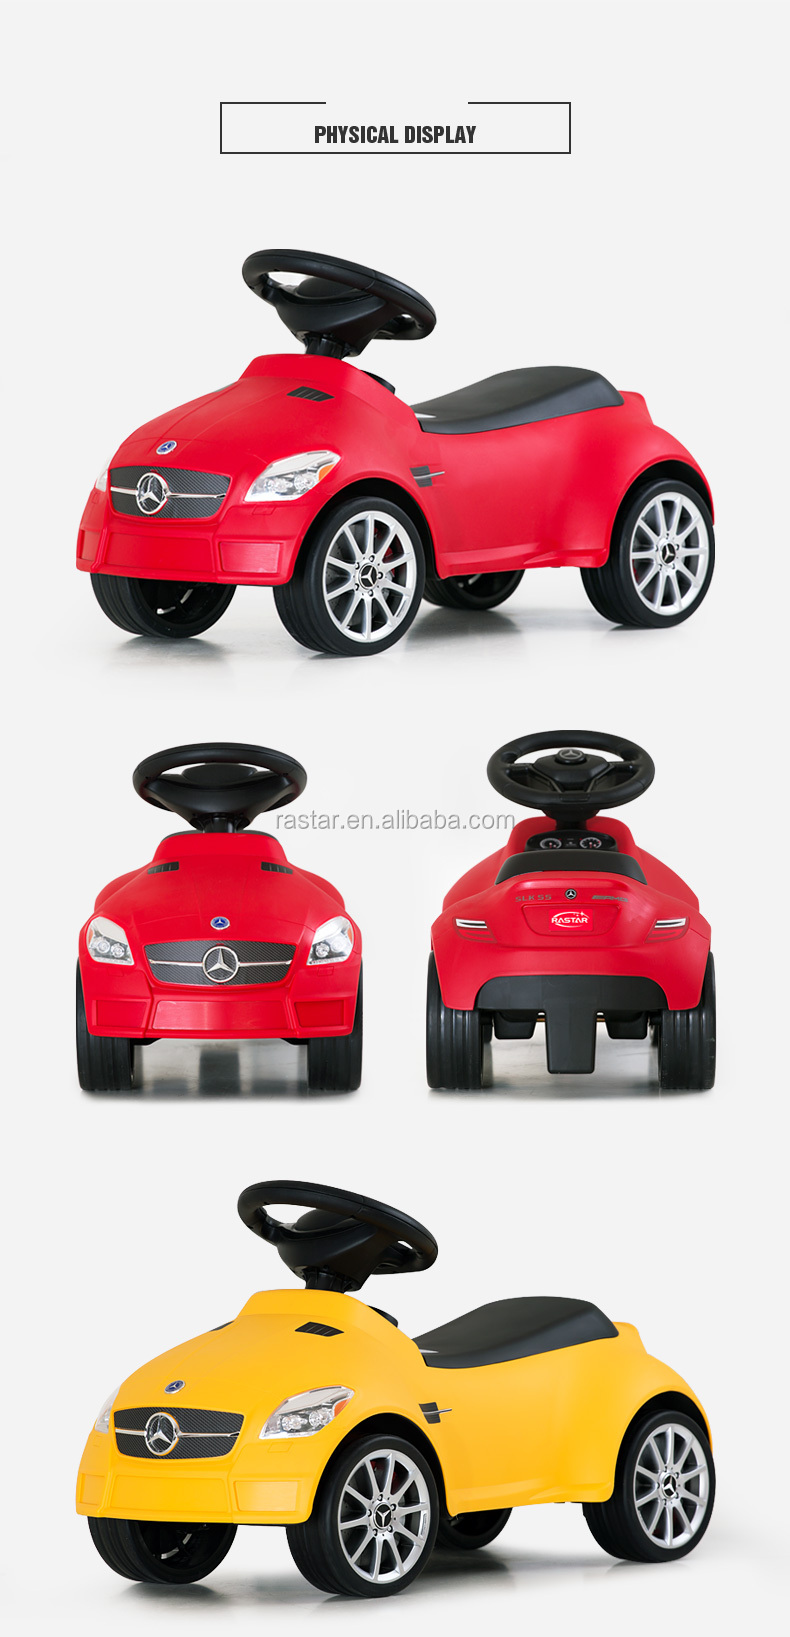 RASTAR wholesale Mercedes children no battery powered sliding toy car